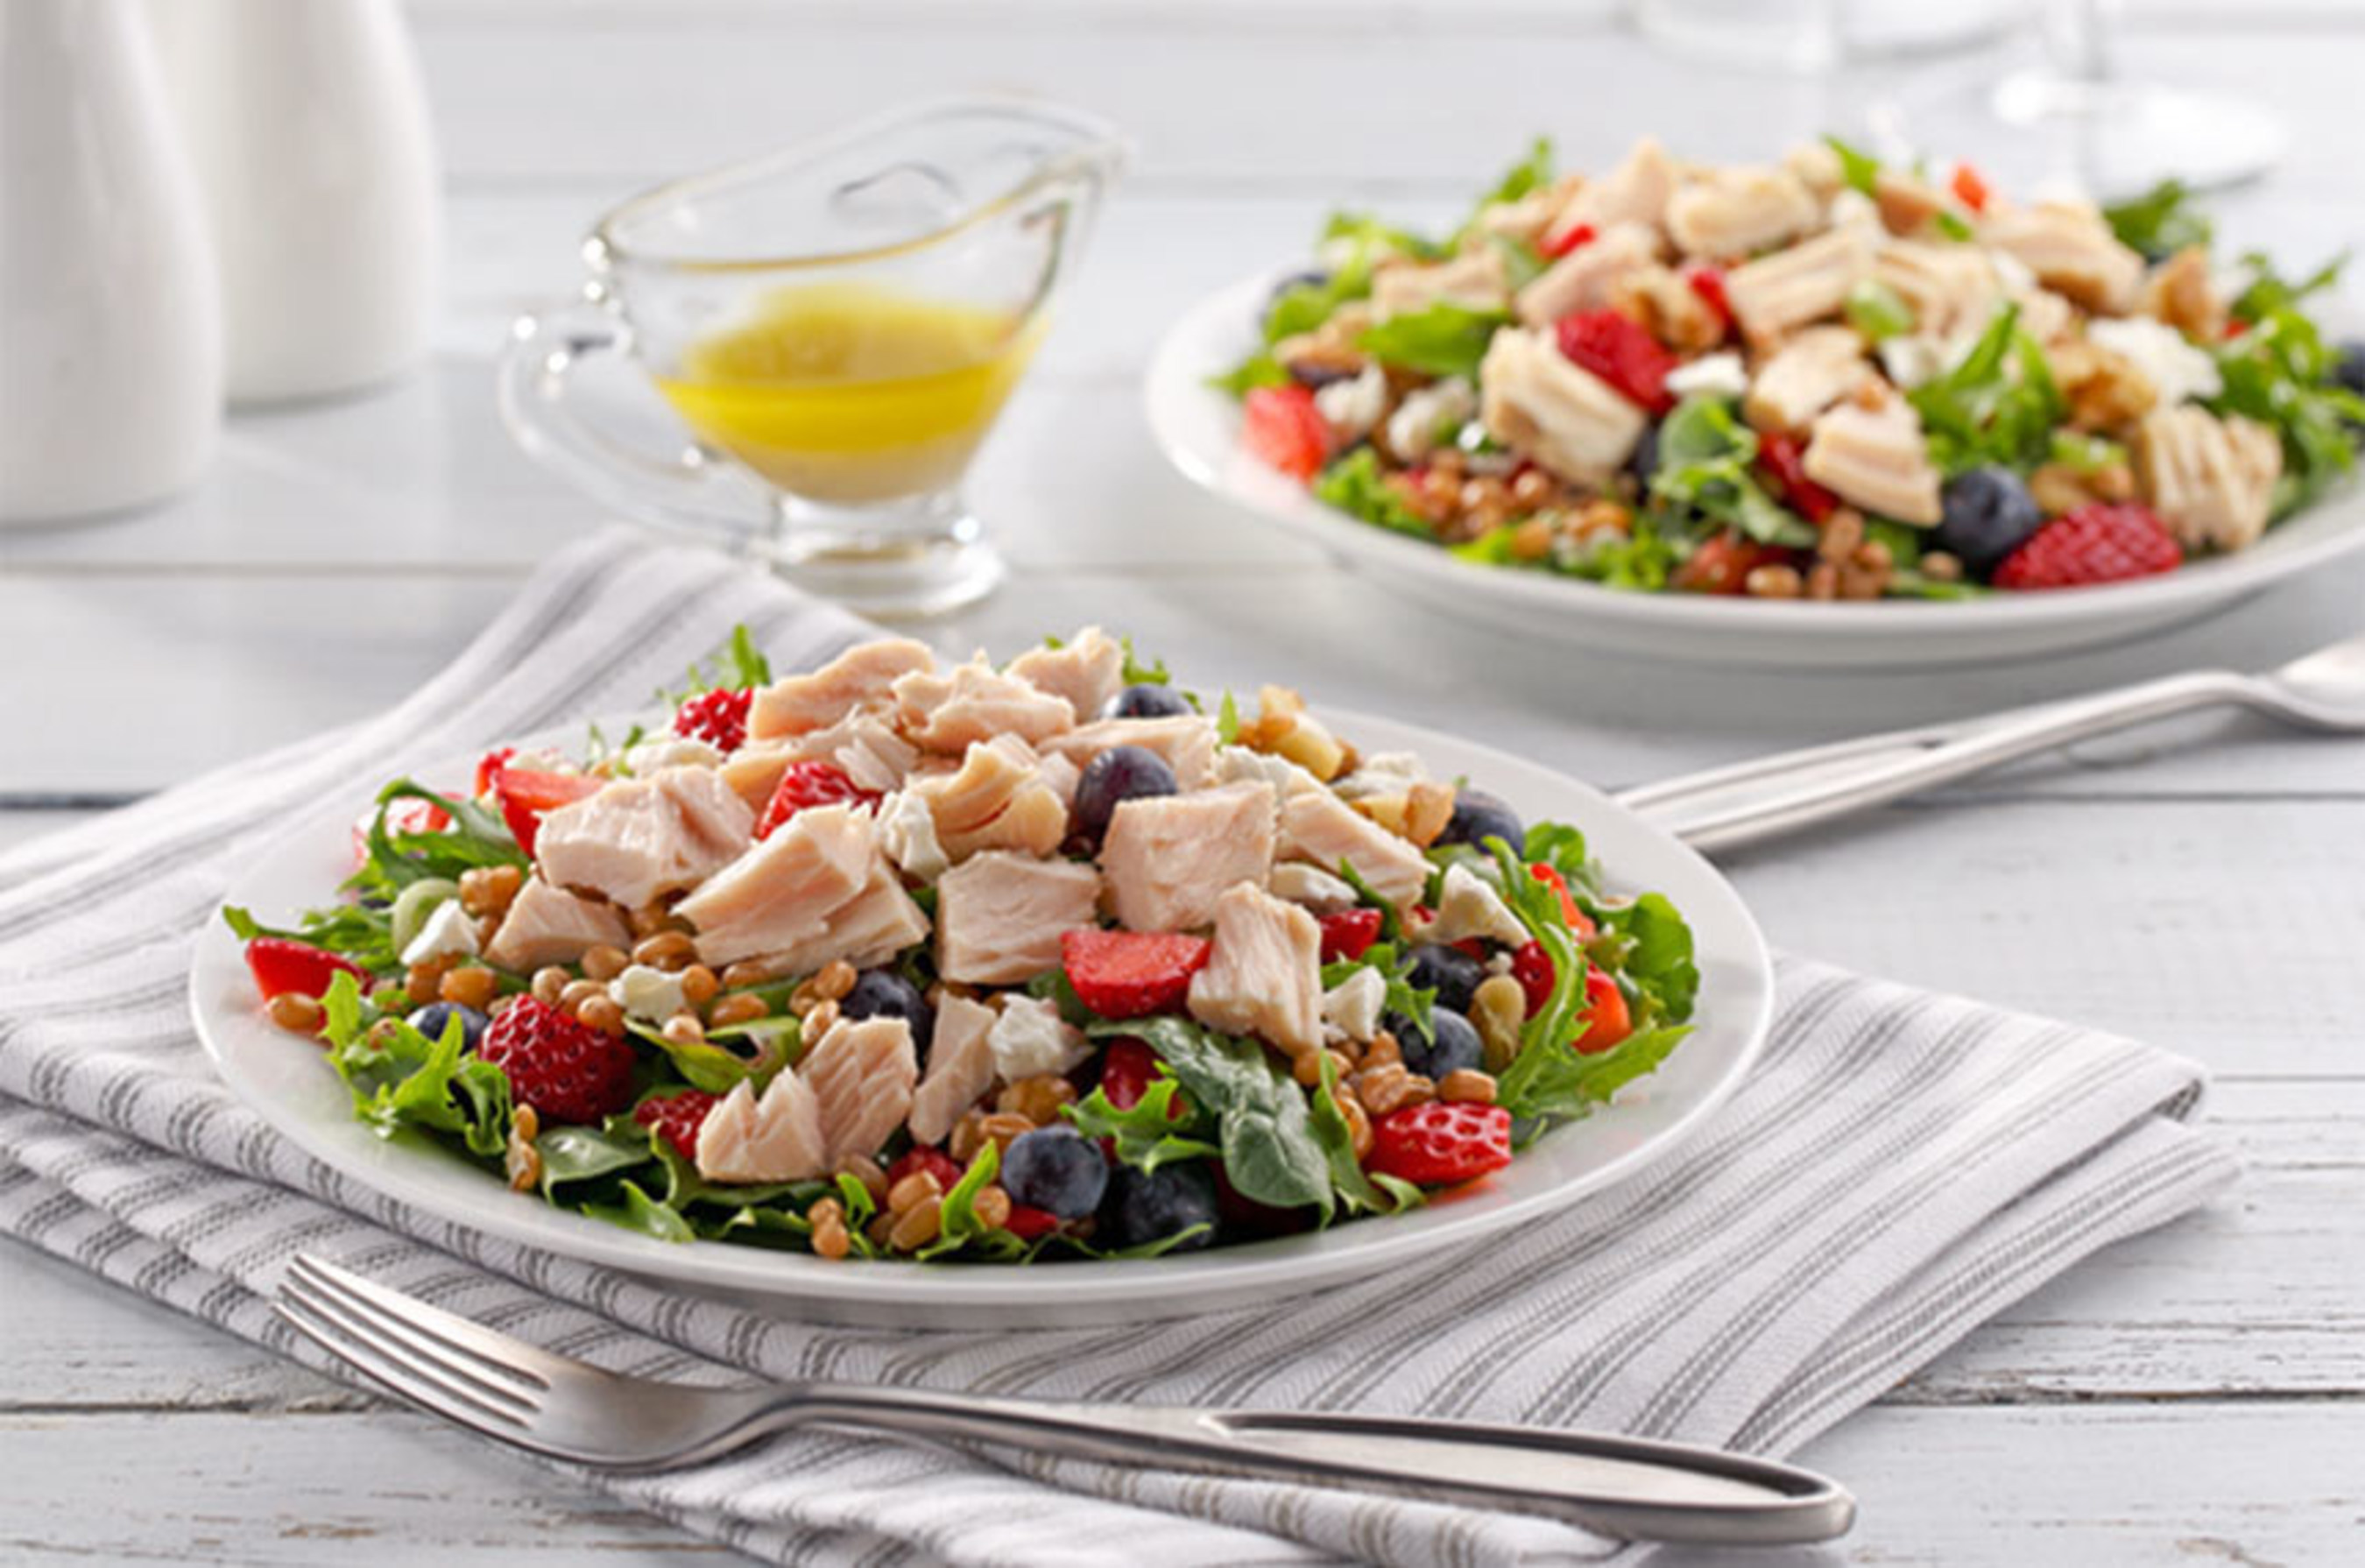 Blue Harbor Fish Co. Spring Wheat Berry Salad